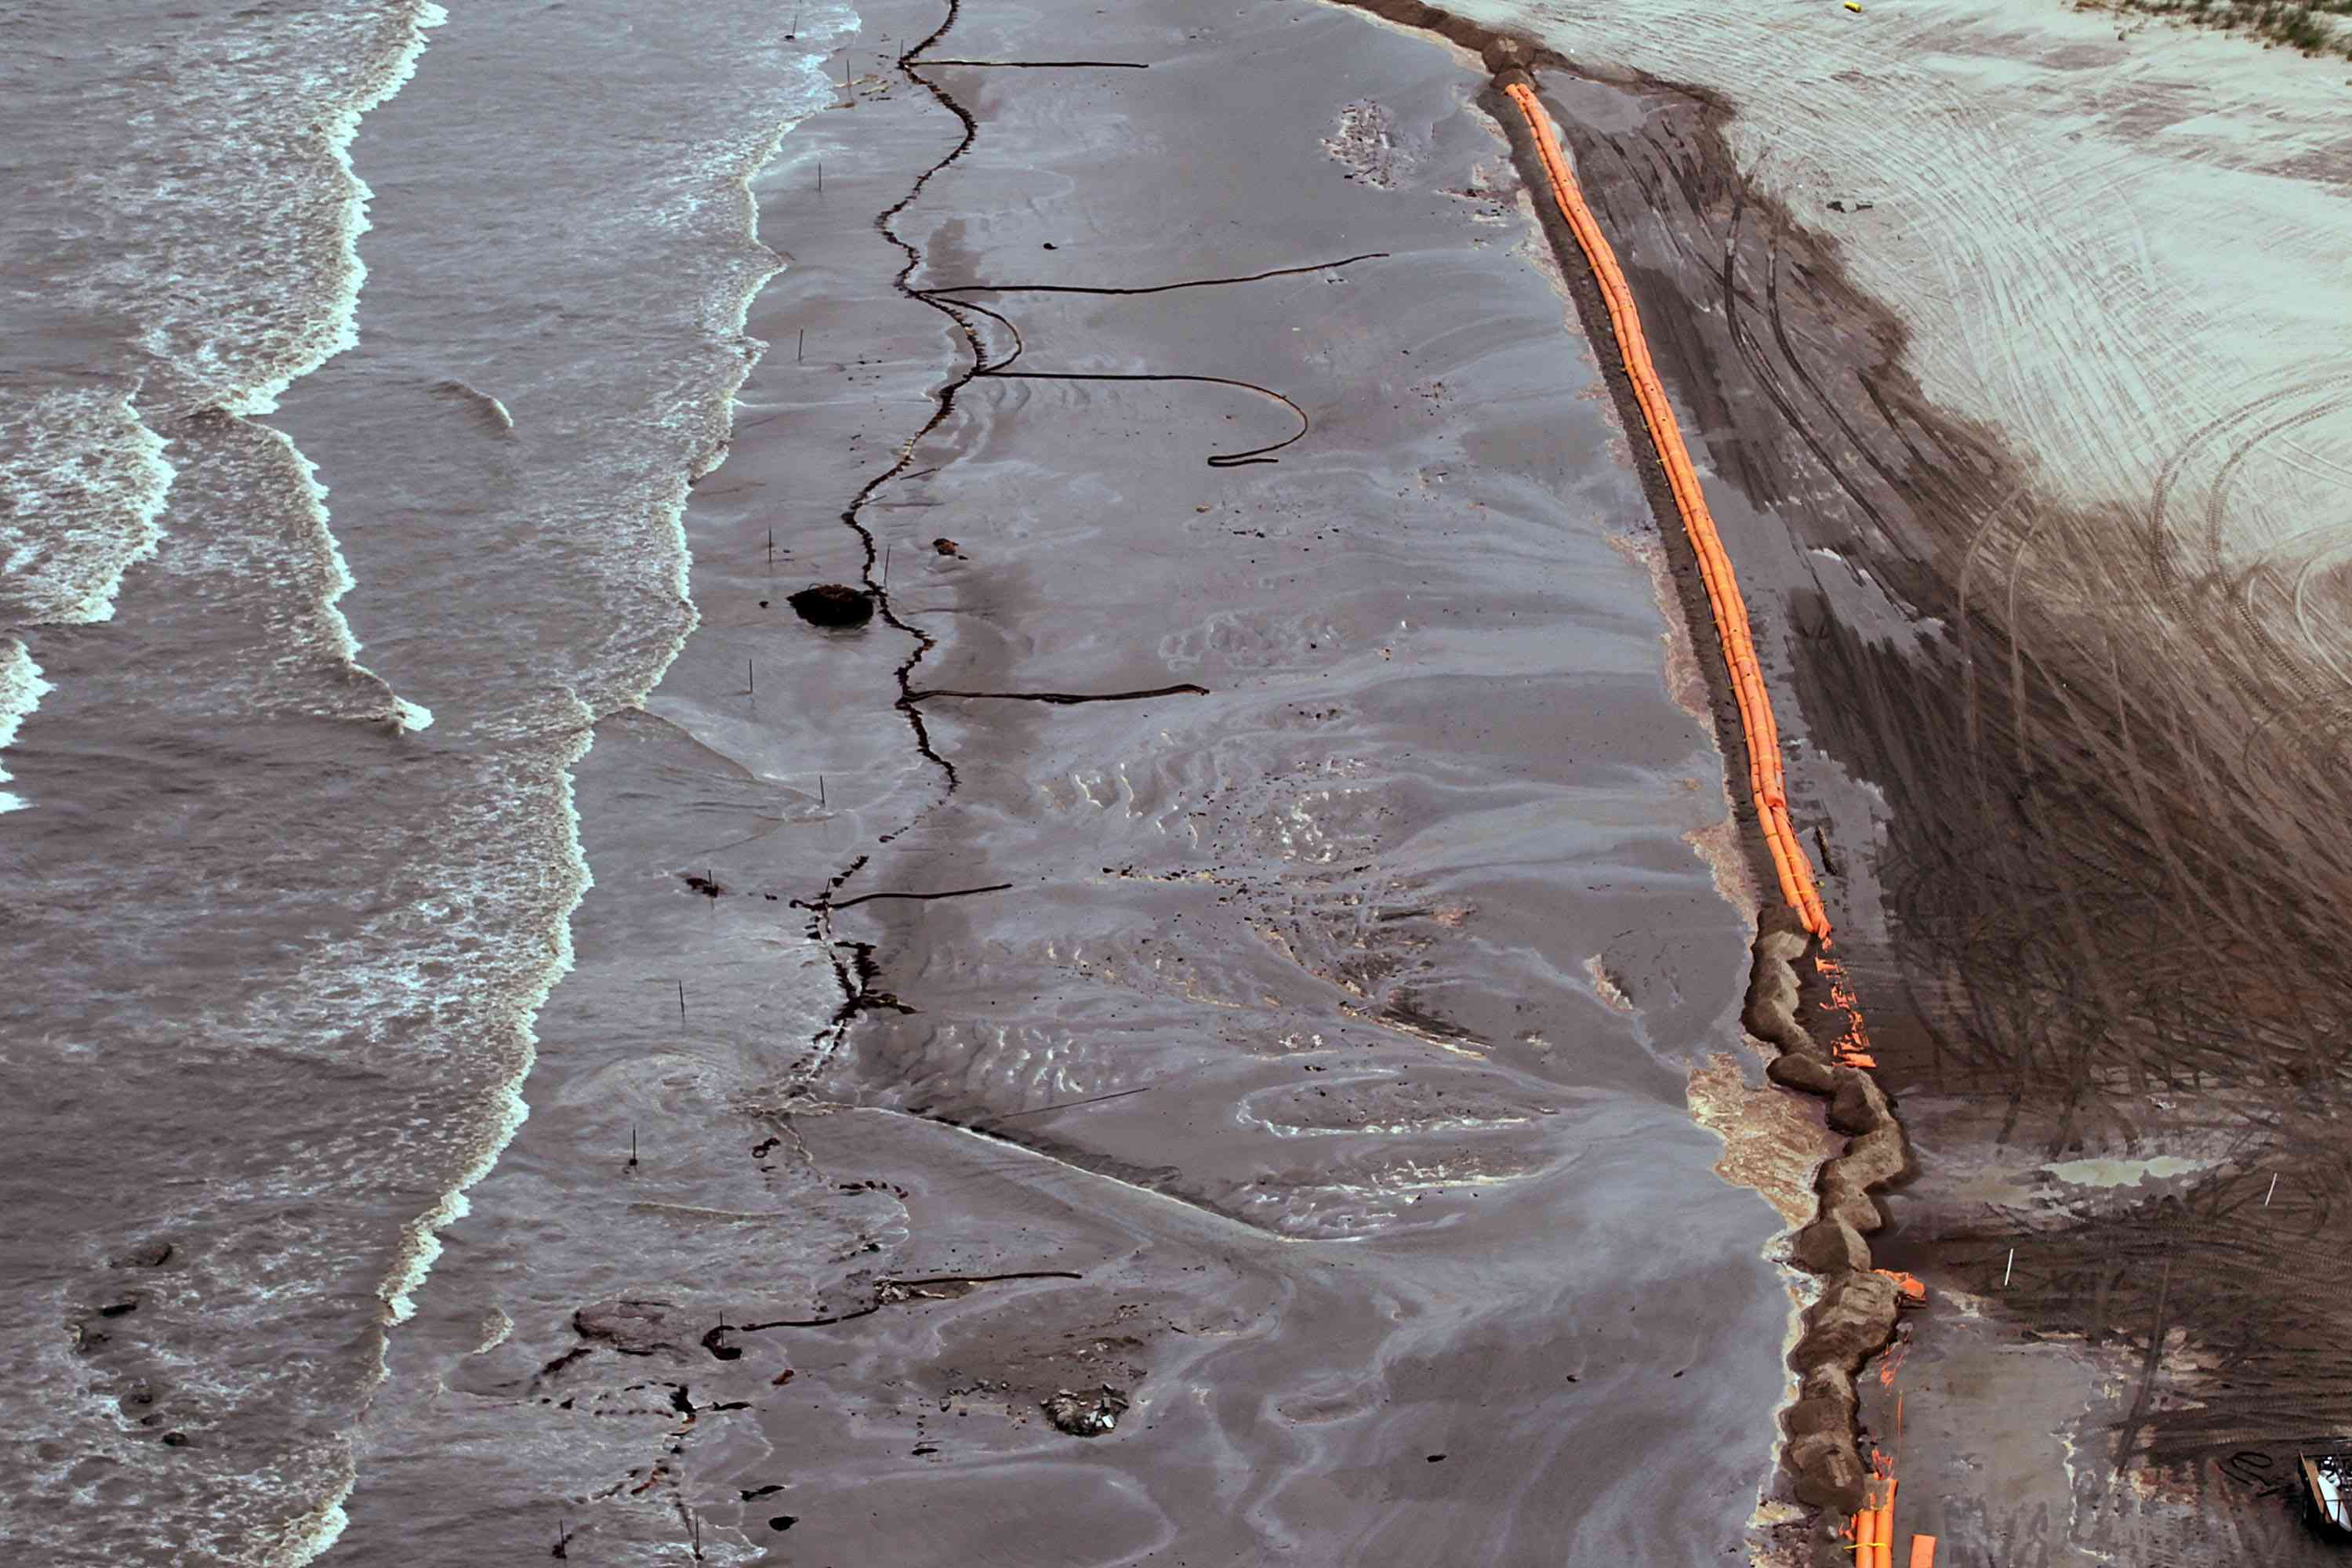 Gulf Coast Battles Continued Spread Of Oil In Its Waters And Coastline